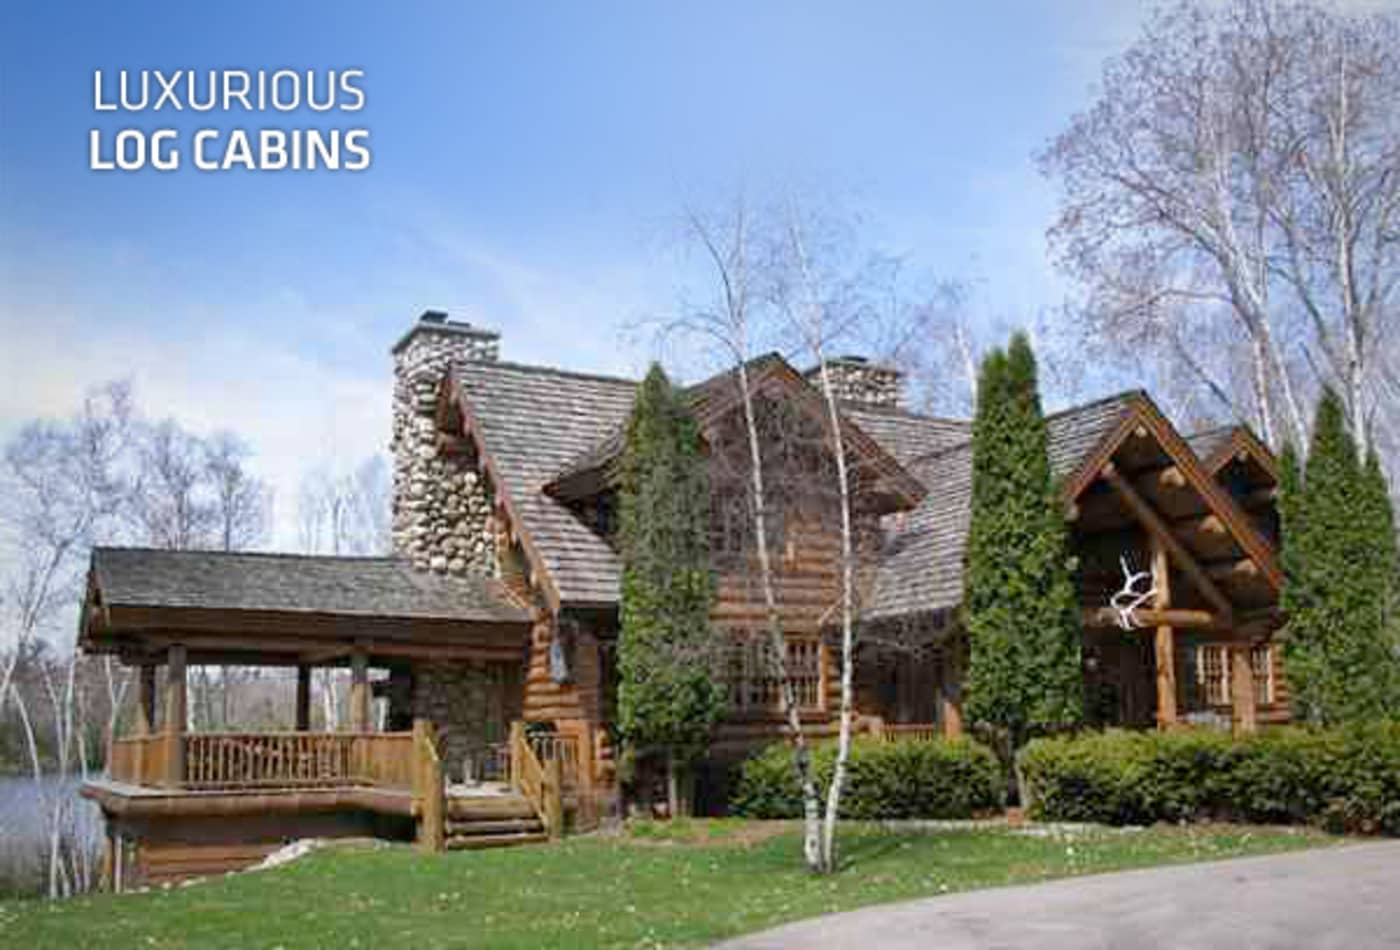 CNBC_luxurious_log_cabins_cover.jpg